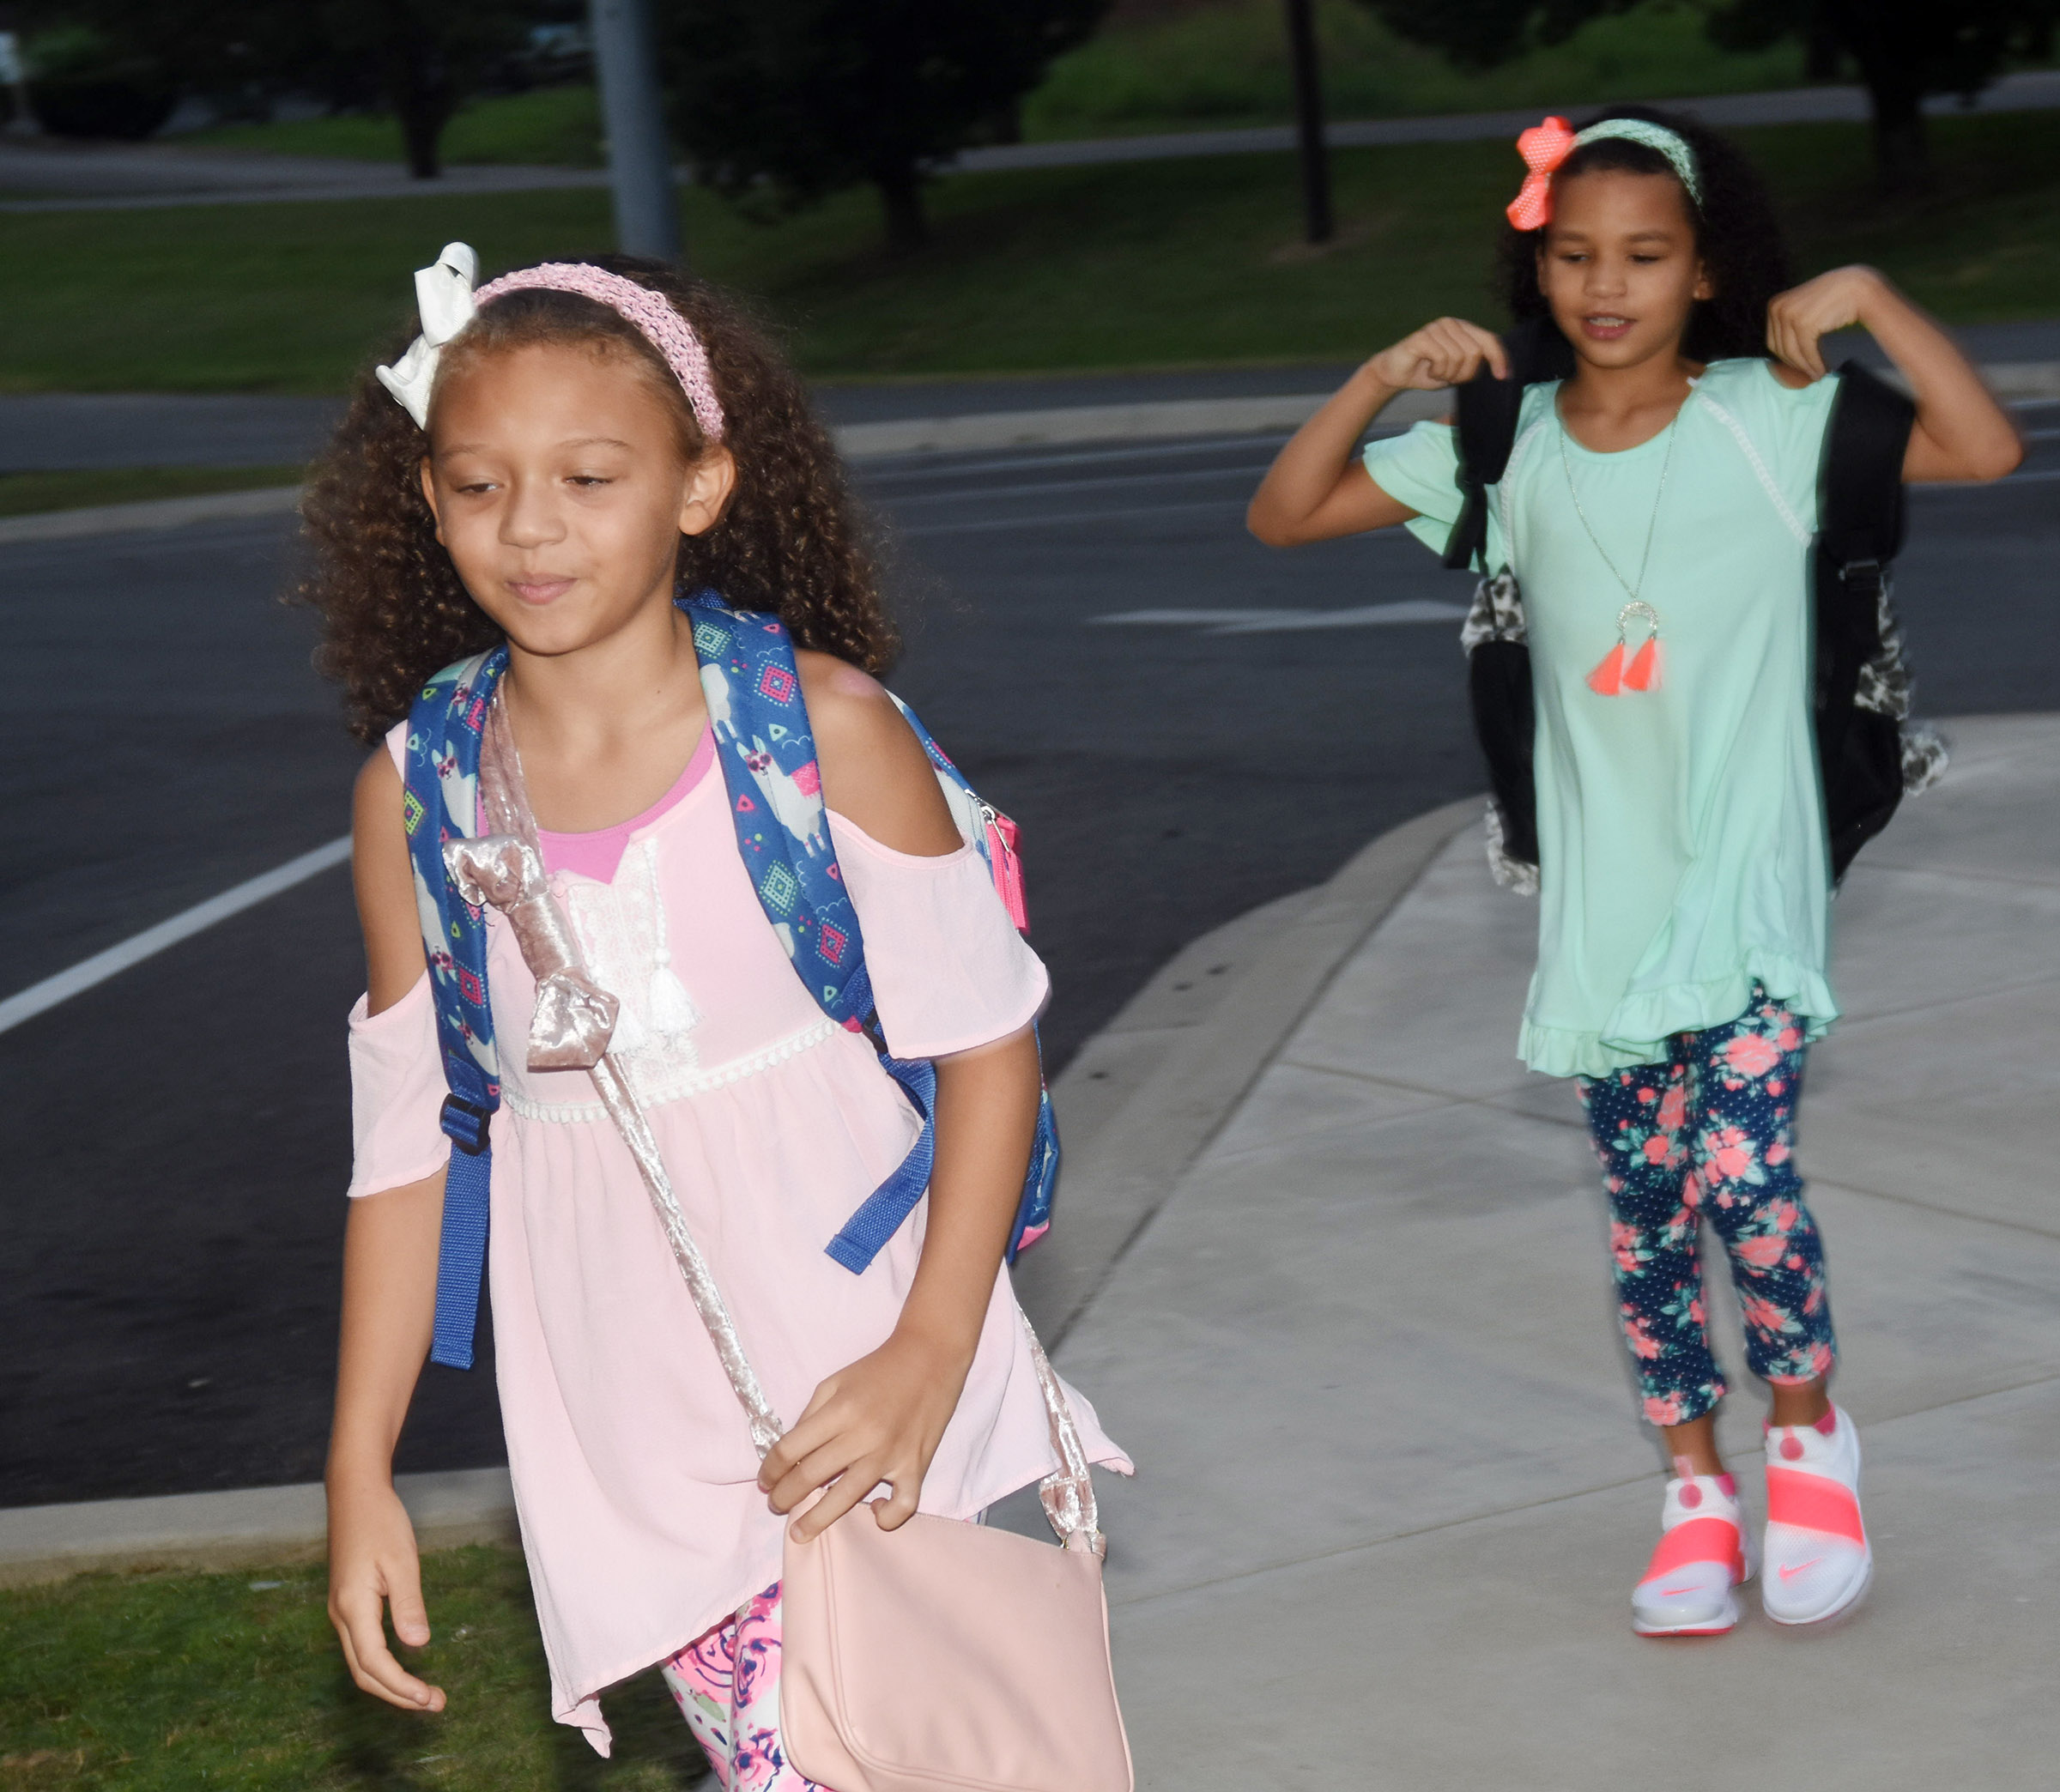 Campbellsville Elementary School fifth-grader Alicia Spaulding, in front, and her sister Aleeya, who is a second-grader, walk in for the first day of school.